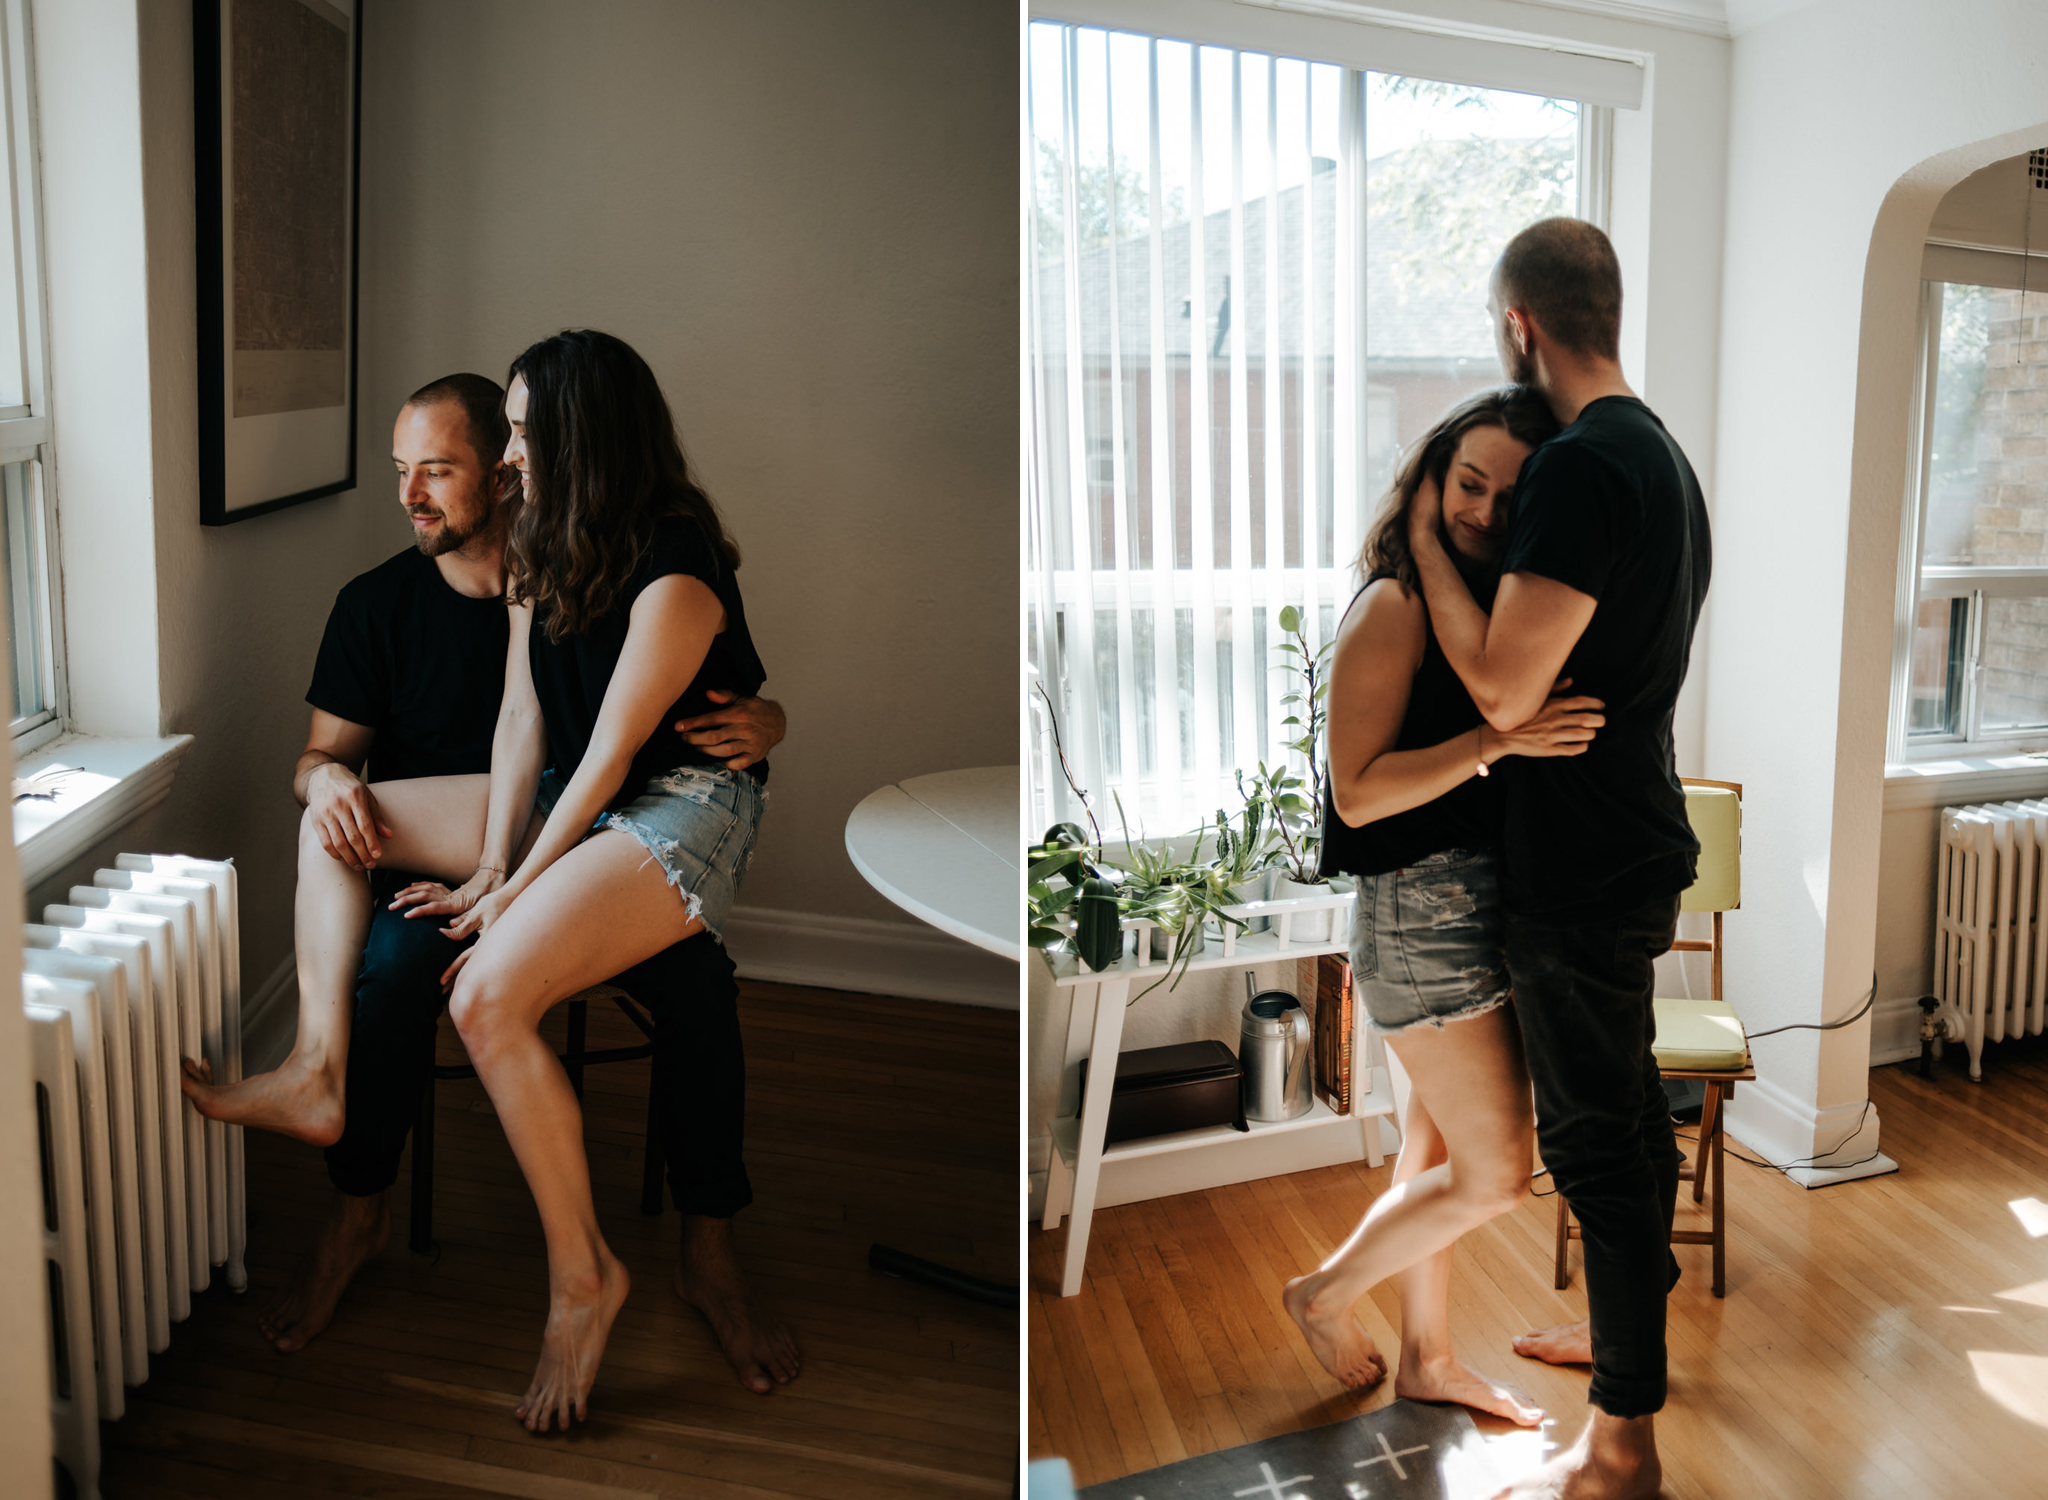 Intimate moment between couple as they hug in living room